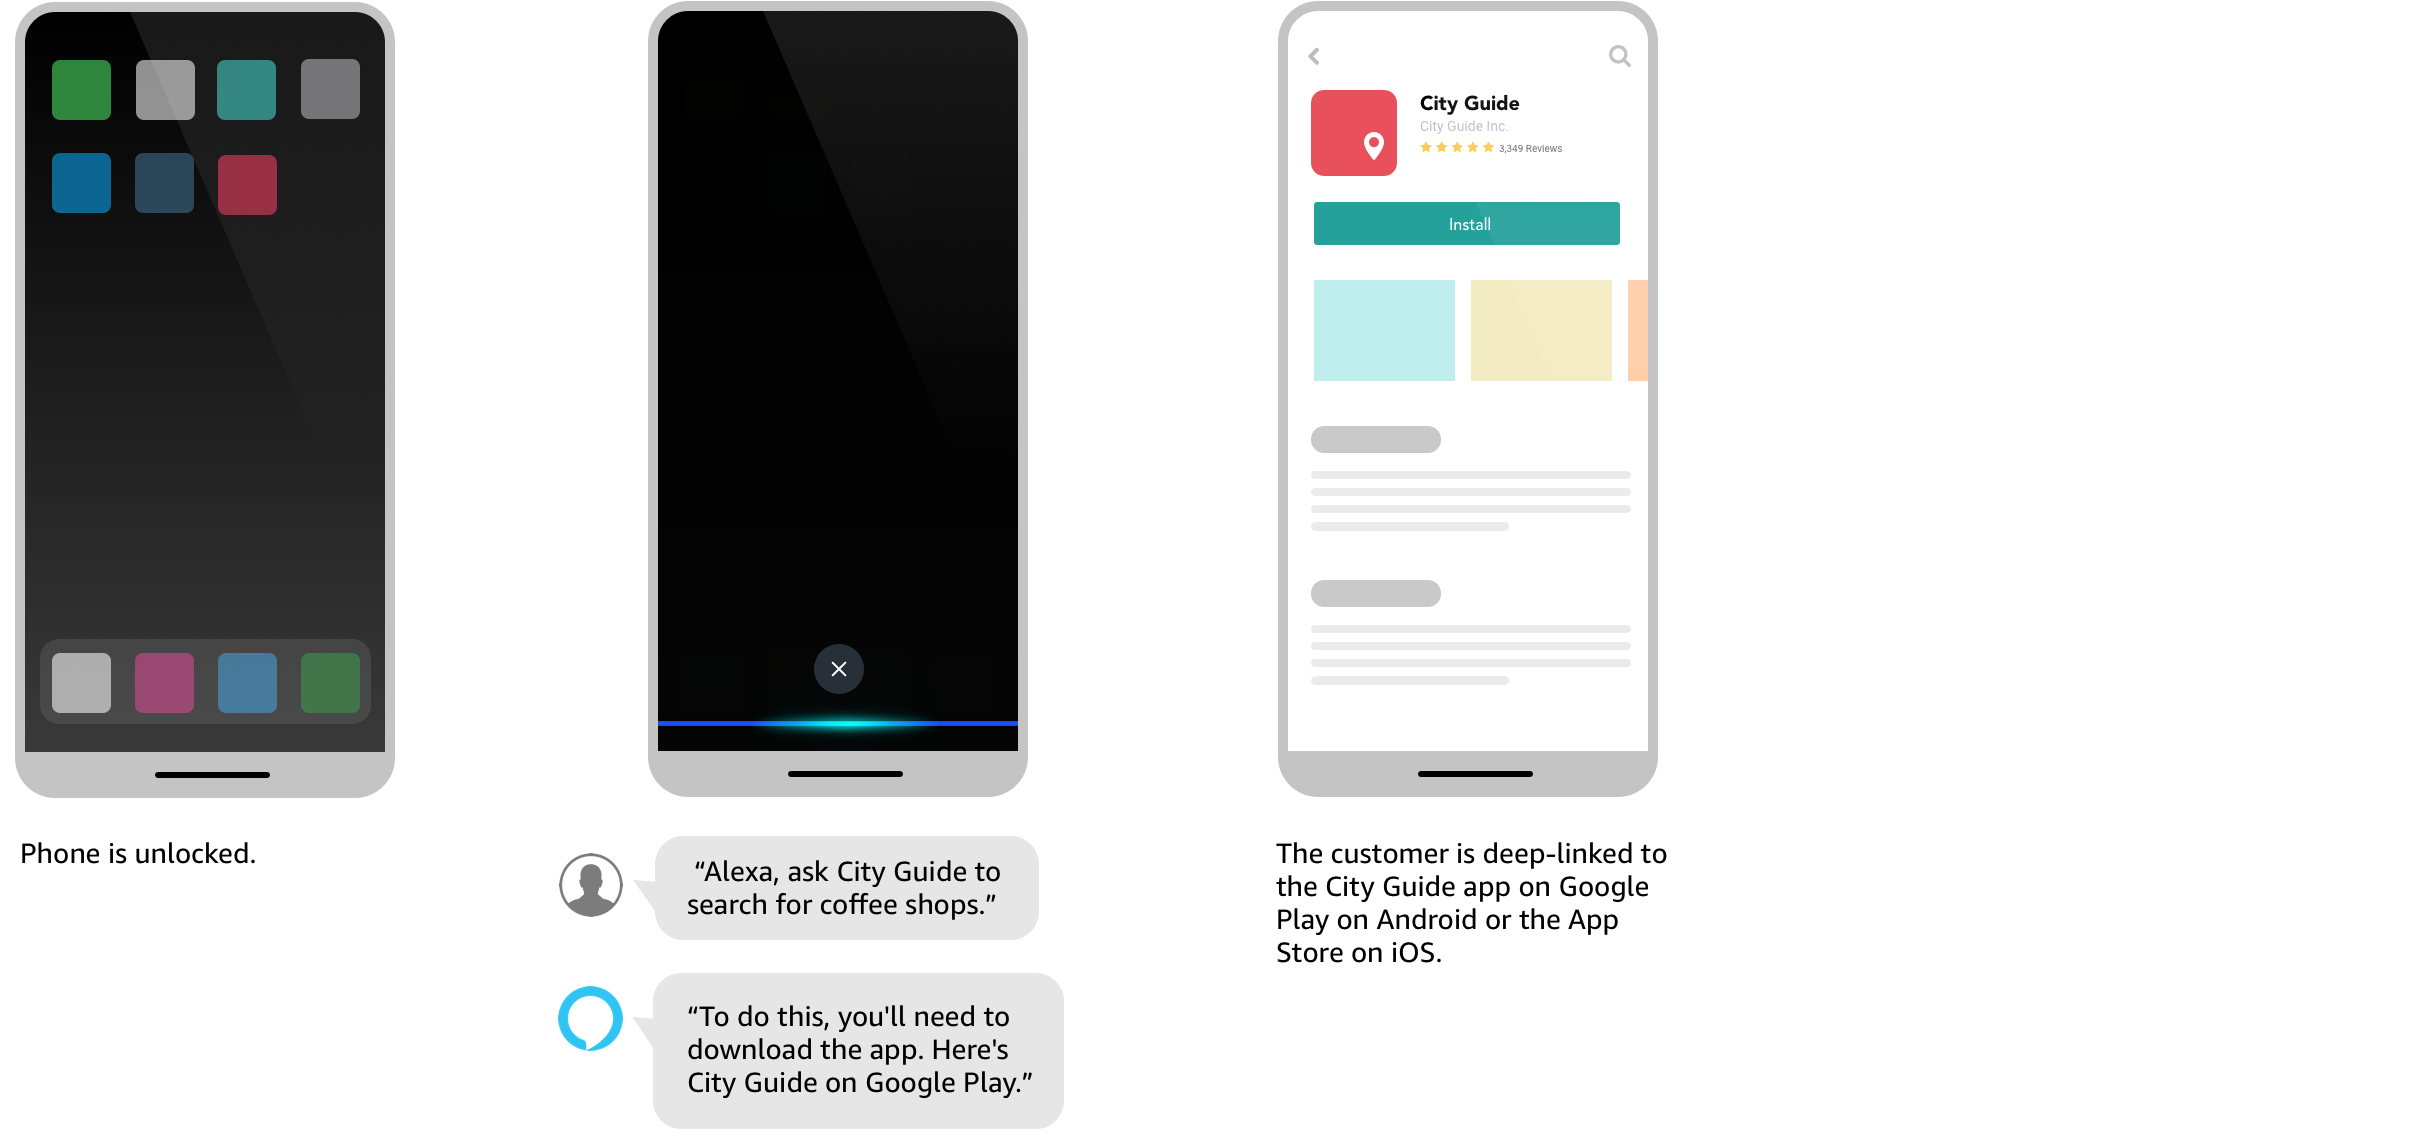 Image of how new customers experience deep-linking to an app or website. Customer asks Alexa to ask City Guide to search for coffee shops. Alexa responds with To do this, you\'ll need to download the app. Here's city guide on Google Play. The customer is deep-linked to the City Guide app on Google Play on Android or the App Store on iOS.